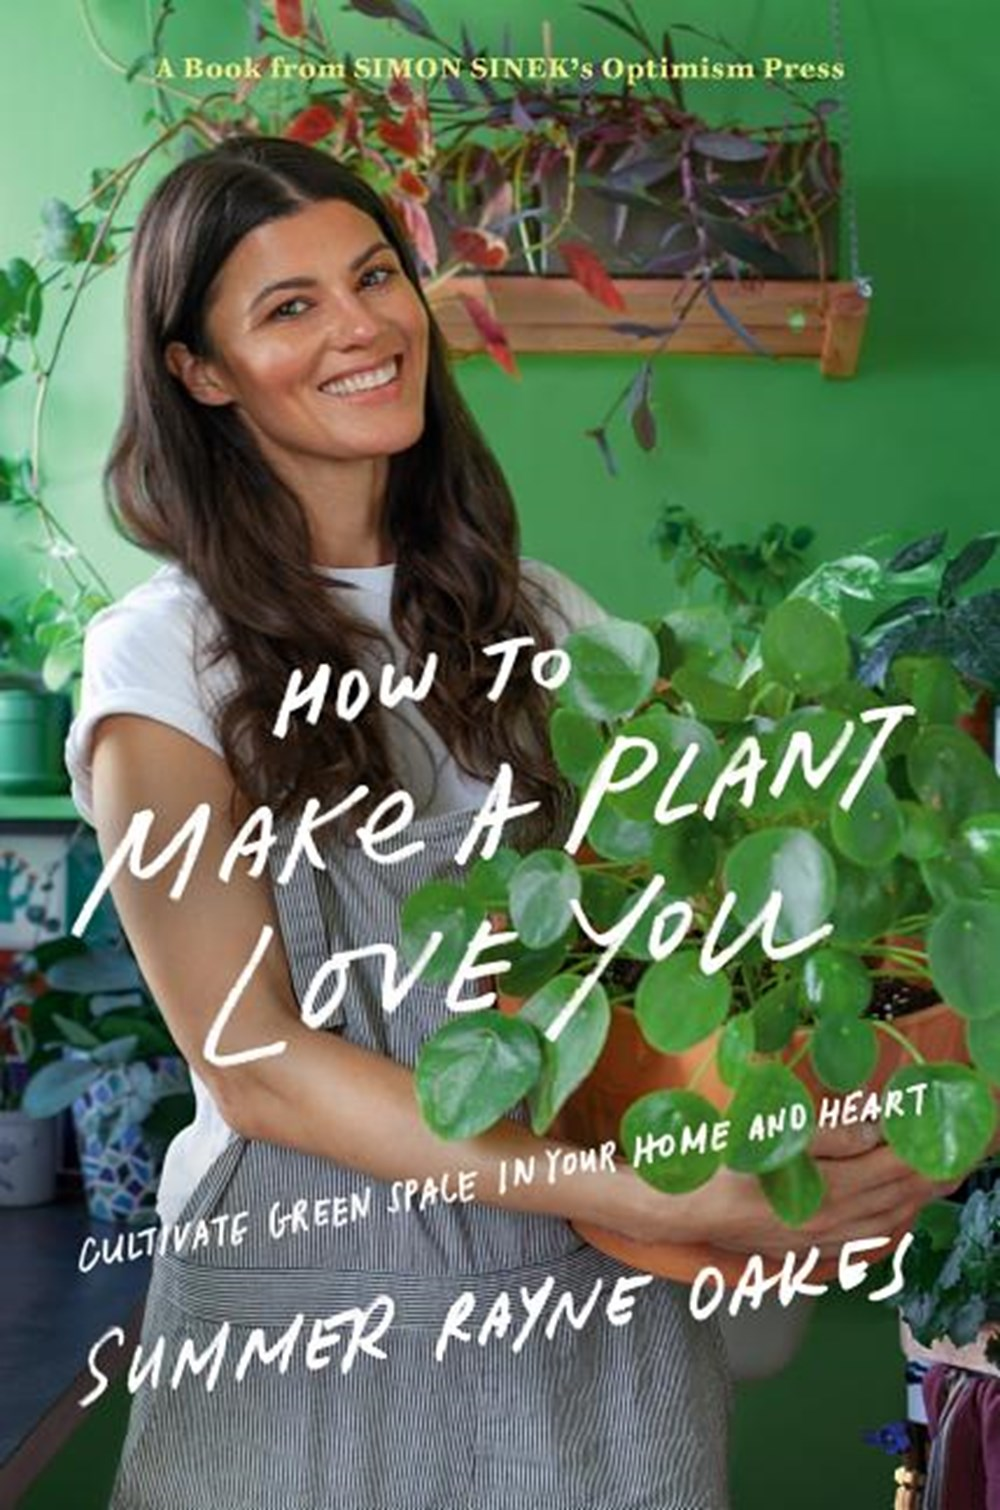 How to Make a Plant Love You Cultivate Green Space in Your Home and Heart